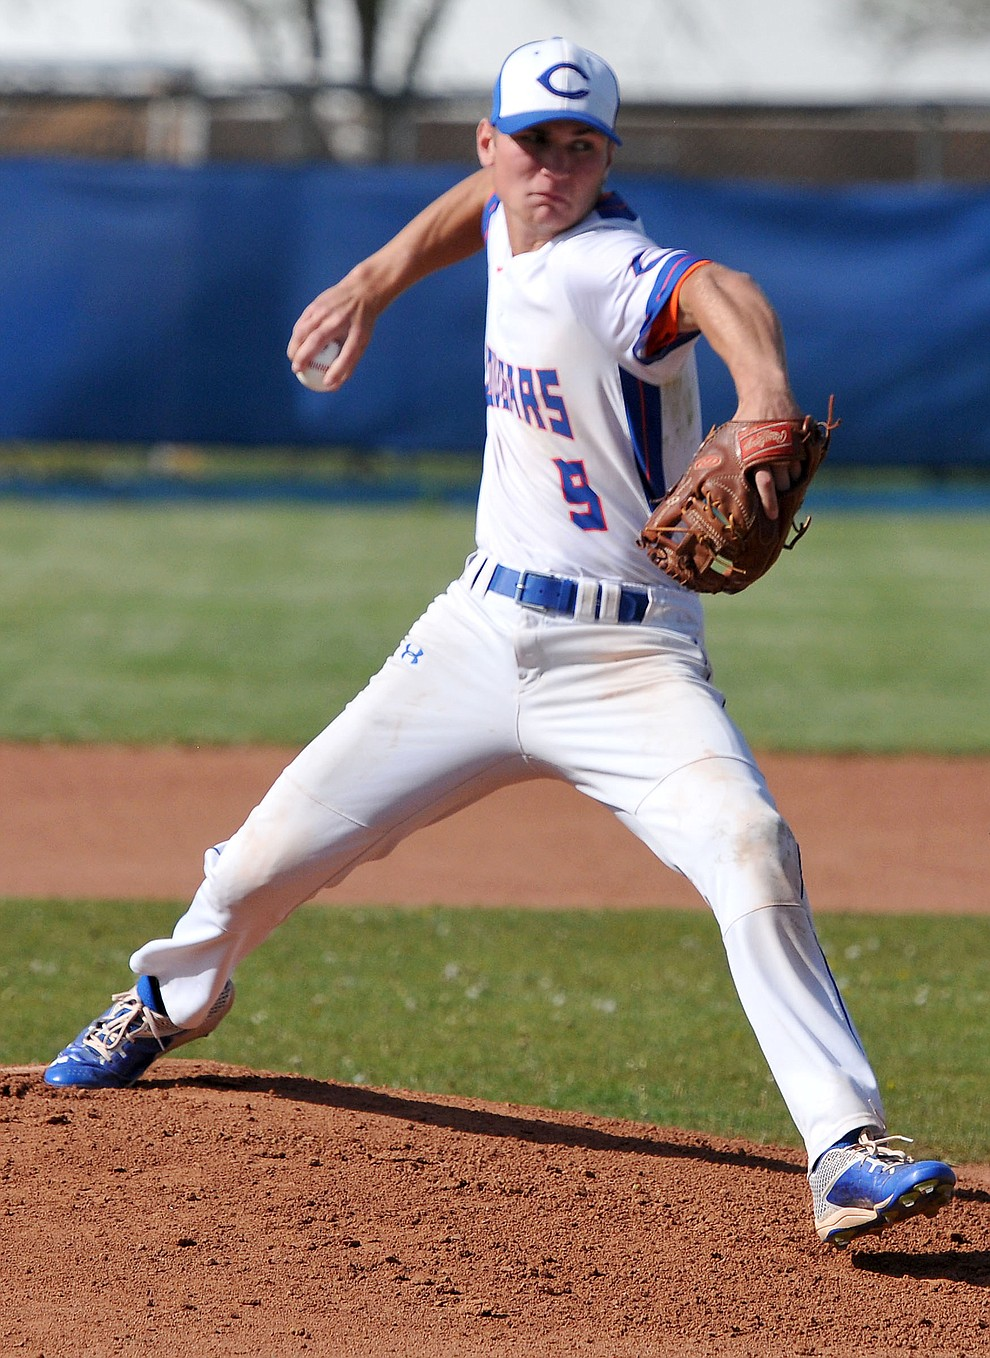 Chino Valley's Jake Clawson (9) fires a pitch towards home plate Tuesday afternoon April 19, 2016 while playing their last regular season home game against Mohave at Chino Valley High School. (Matt Hinshaw/The Daily Courier)